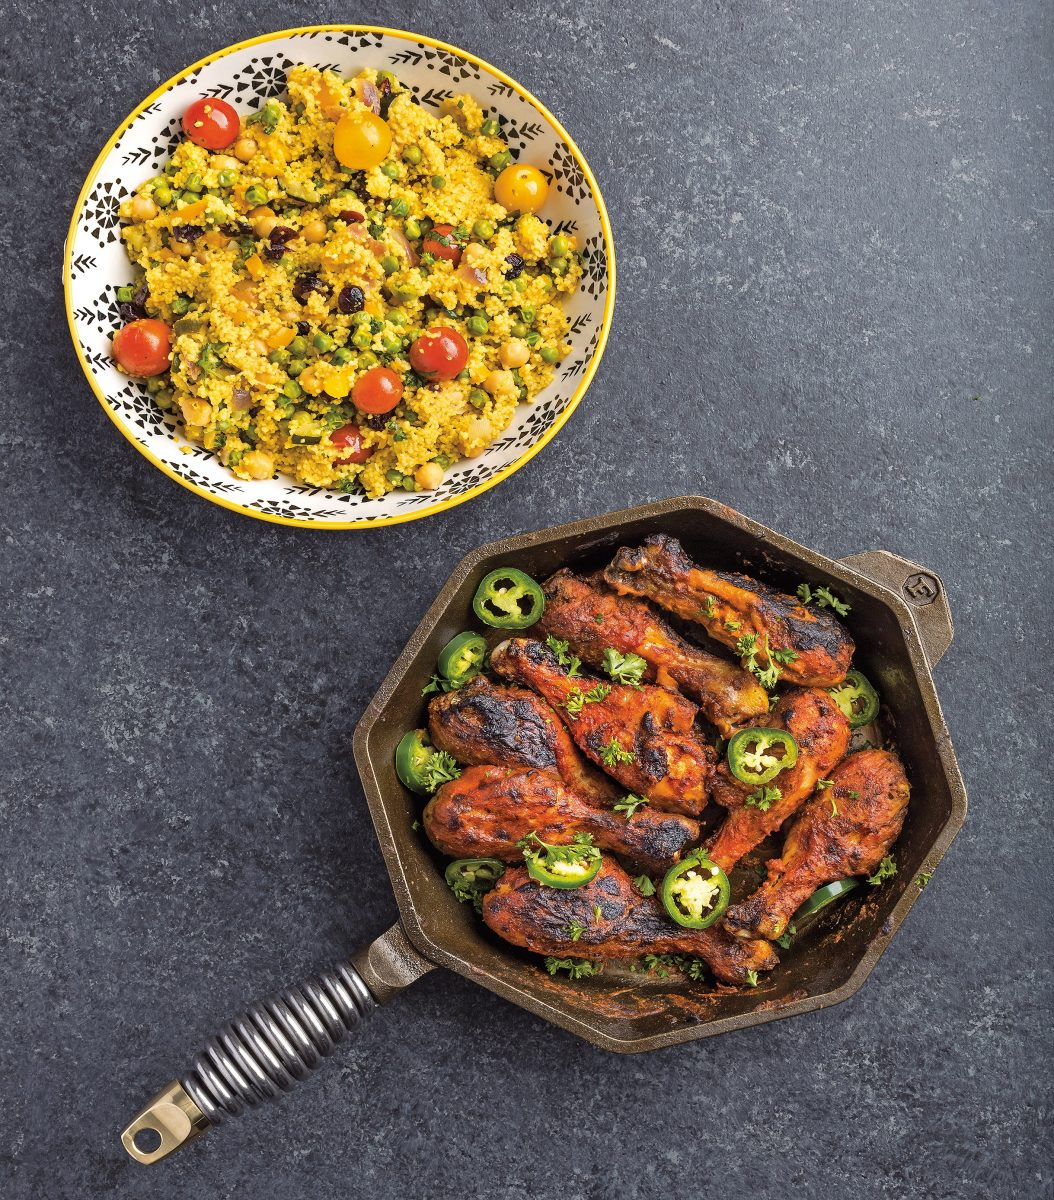 Harissa Chicken recipe by Evi Aki from Flavors of Africa